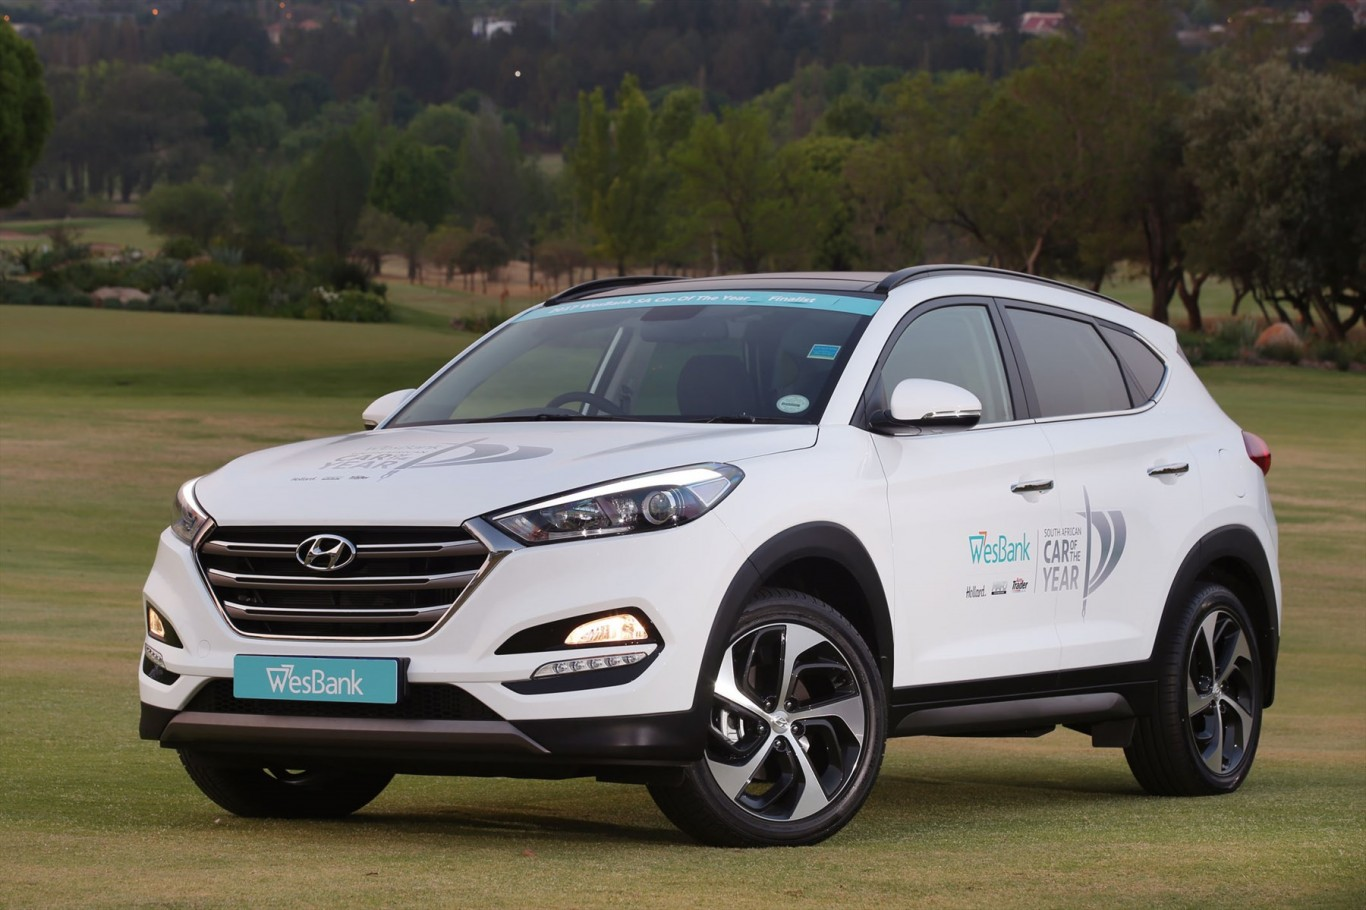 Hyundai Tucson is a finalist for Car-of-the-Year prize